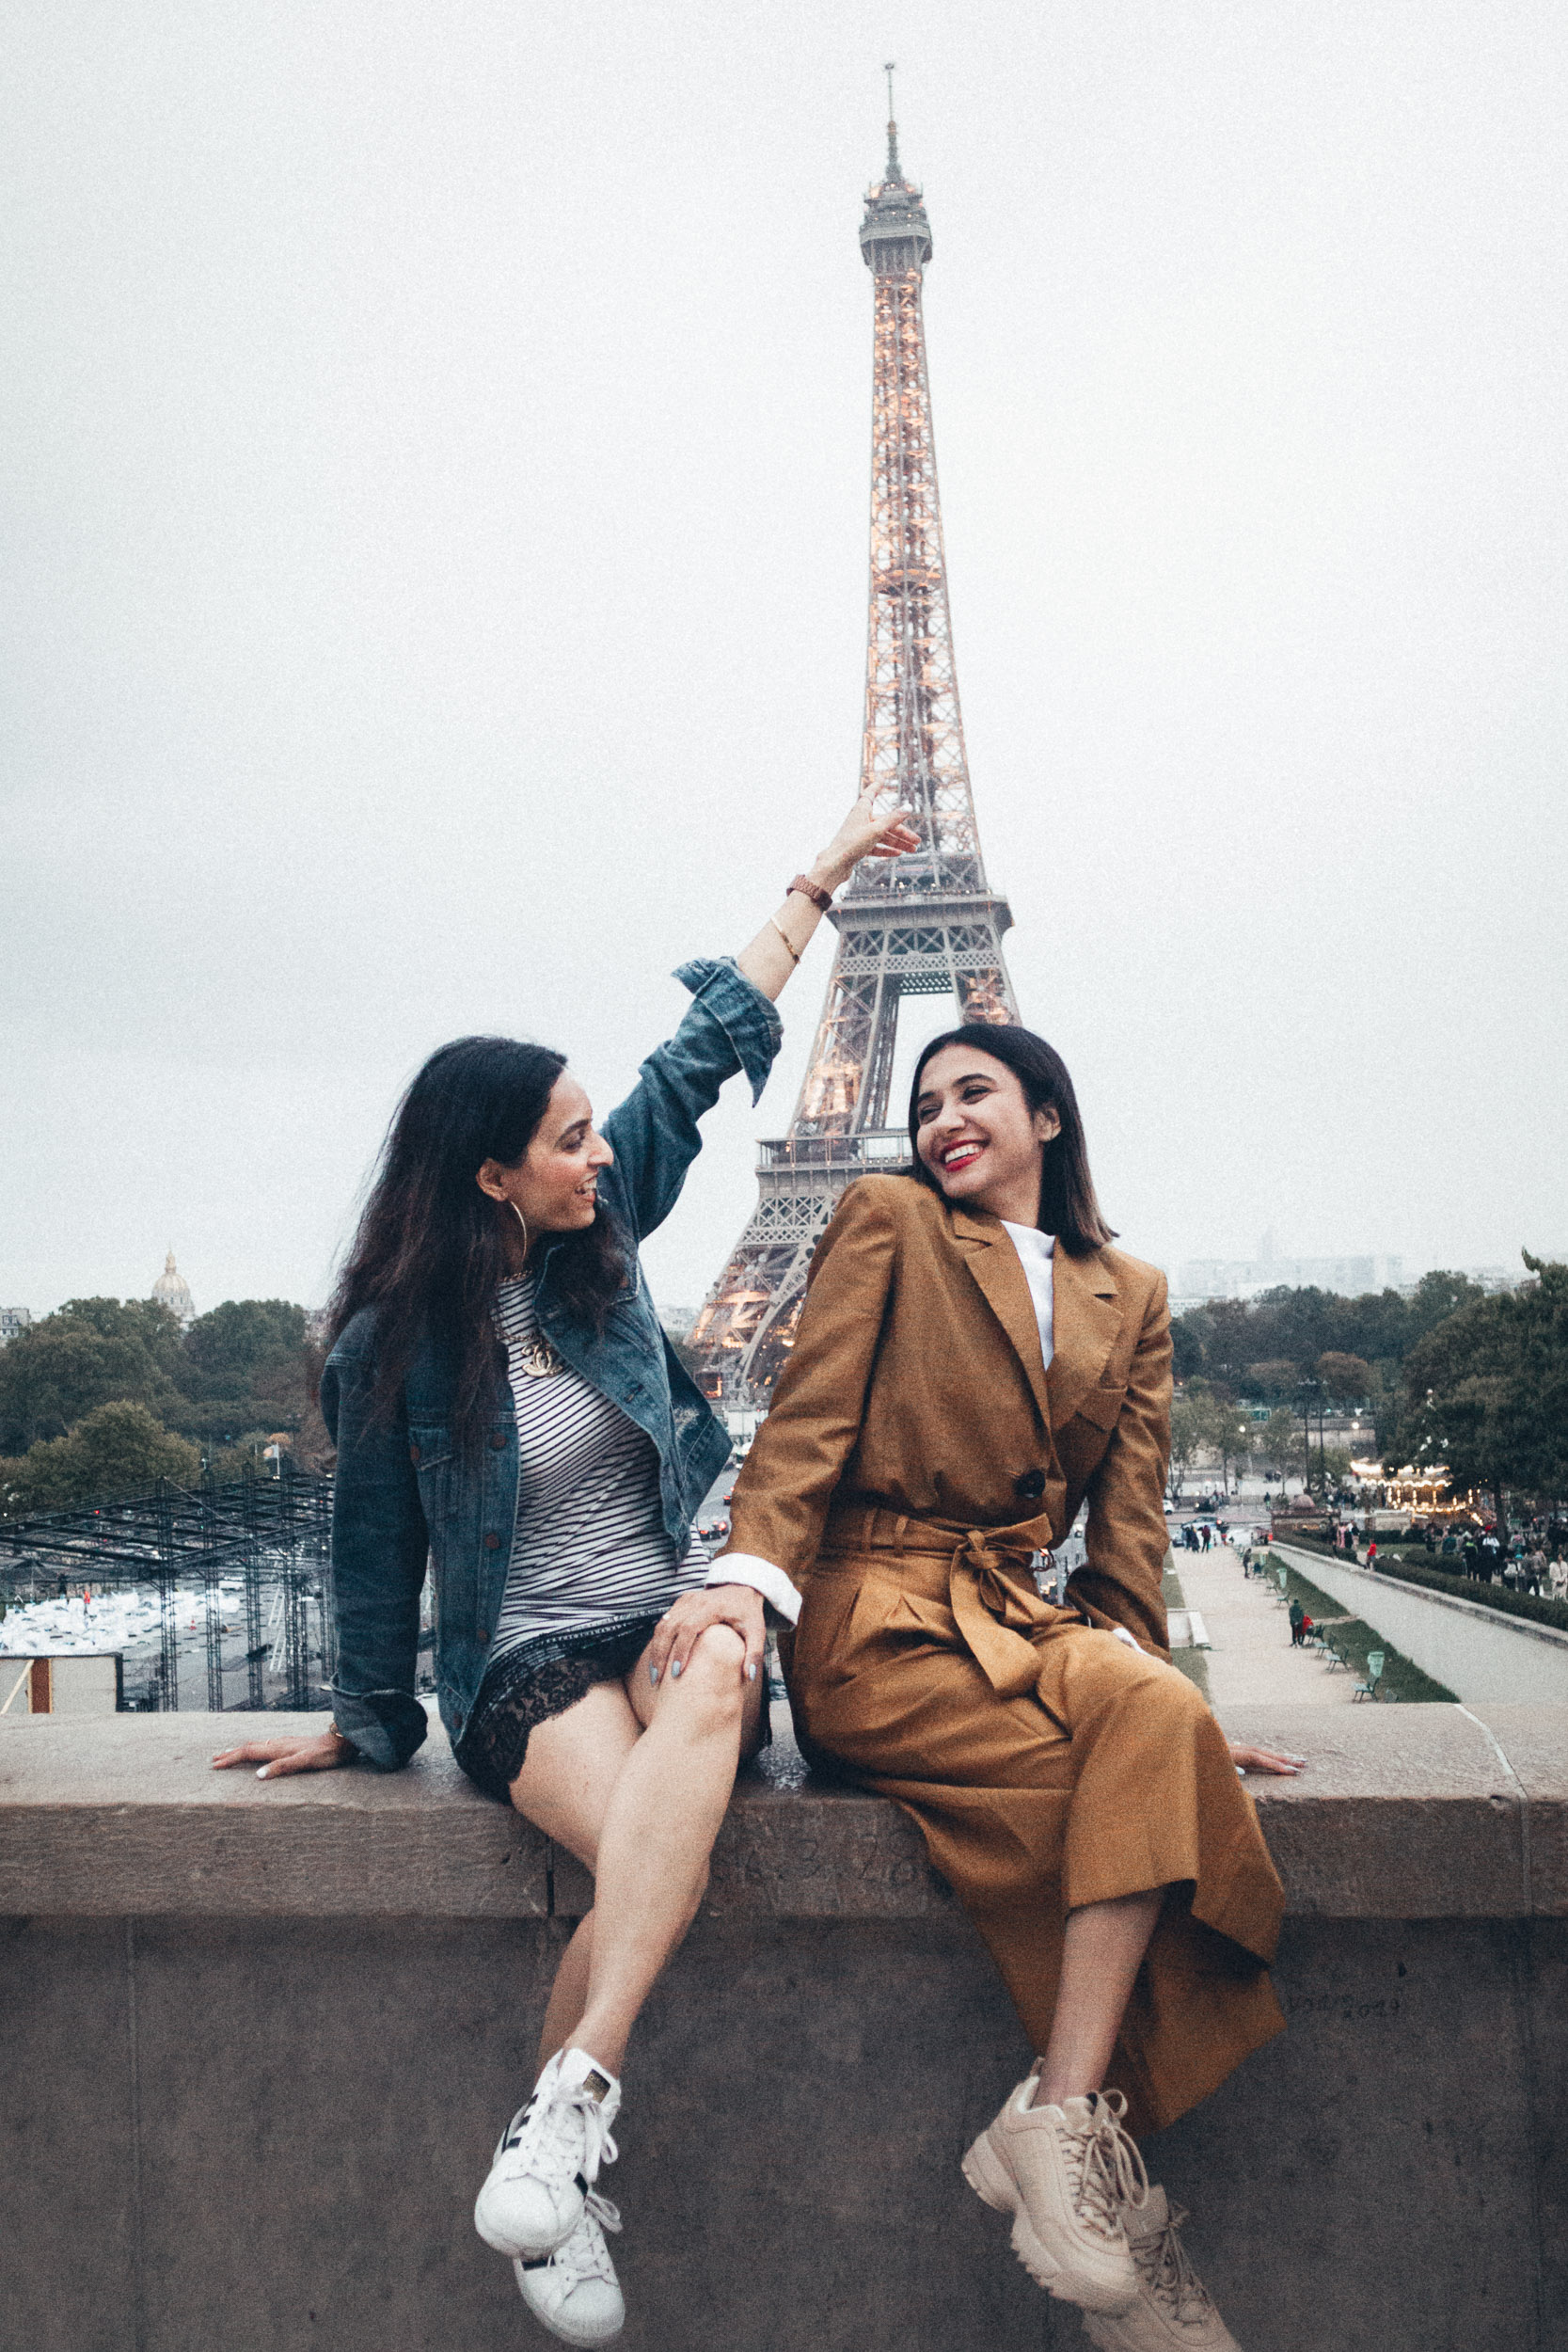 Young Girl friends travel bloggers and fashion bloggers sitting in front of the Eiffel Tower in Paris for Paris travel guide